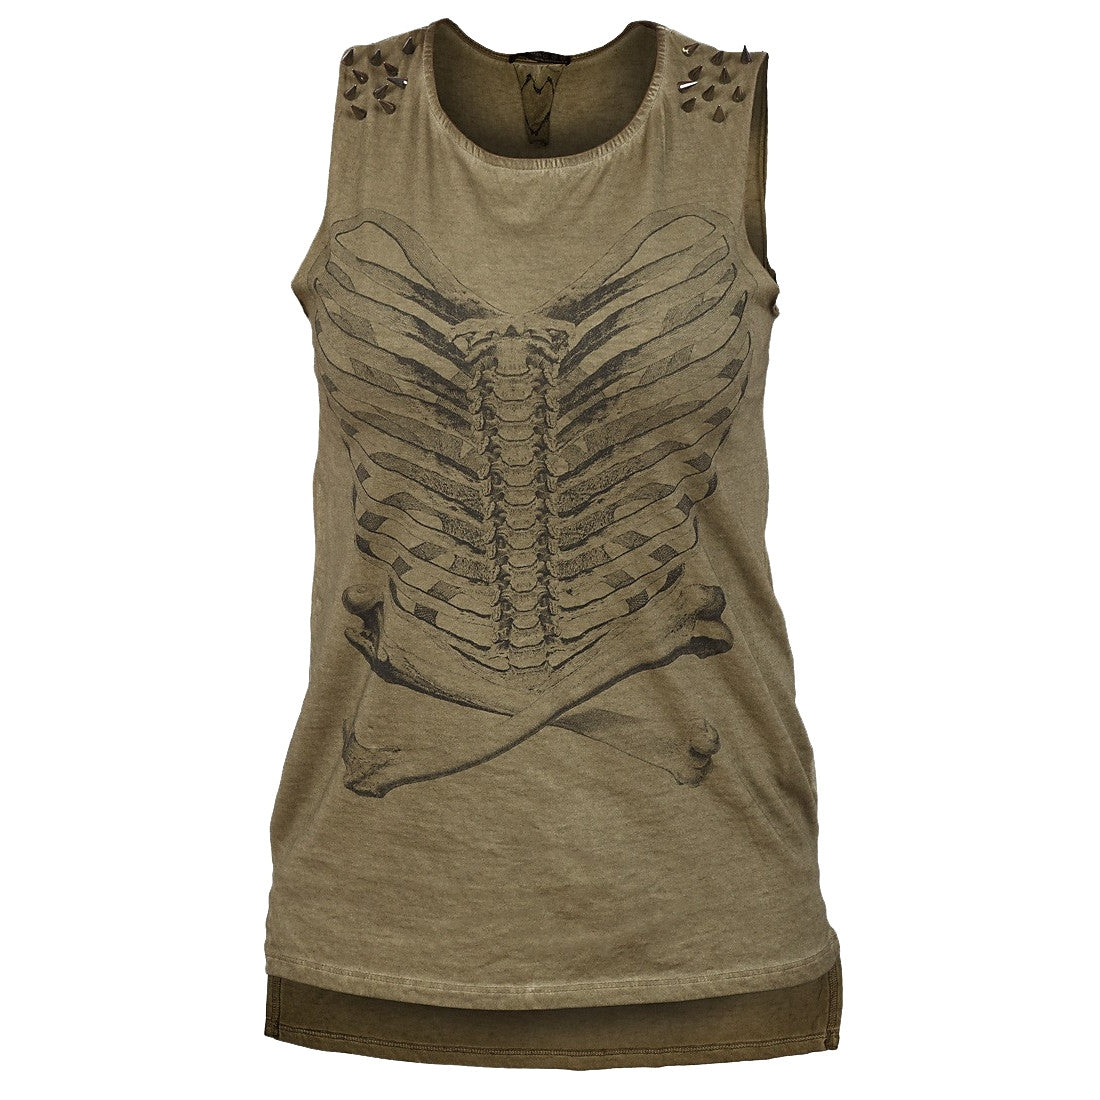 Sebix - Khaki Green Cotton Skeleton Punk Rock Sleeveless Top with Studs - Front